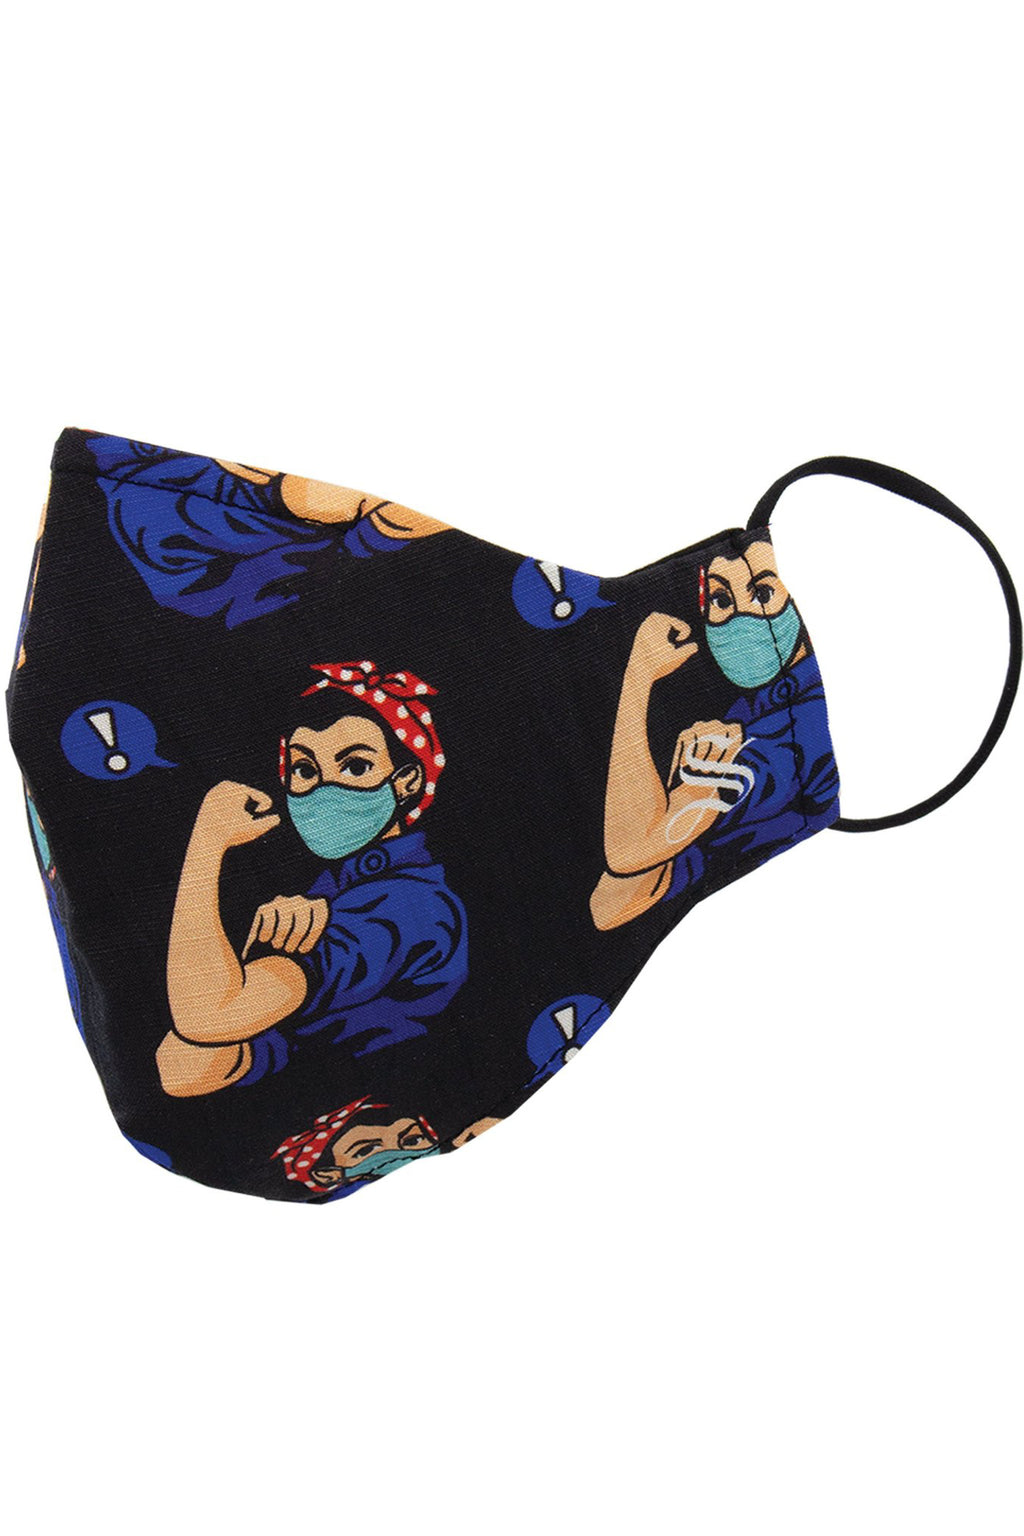 Rosie the Riveter Mask in Black